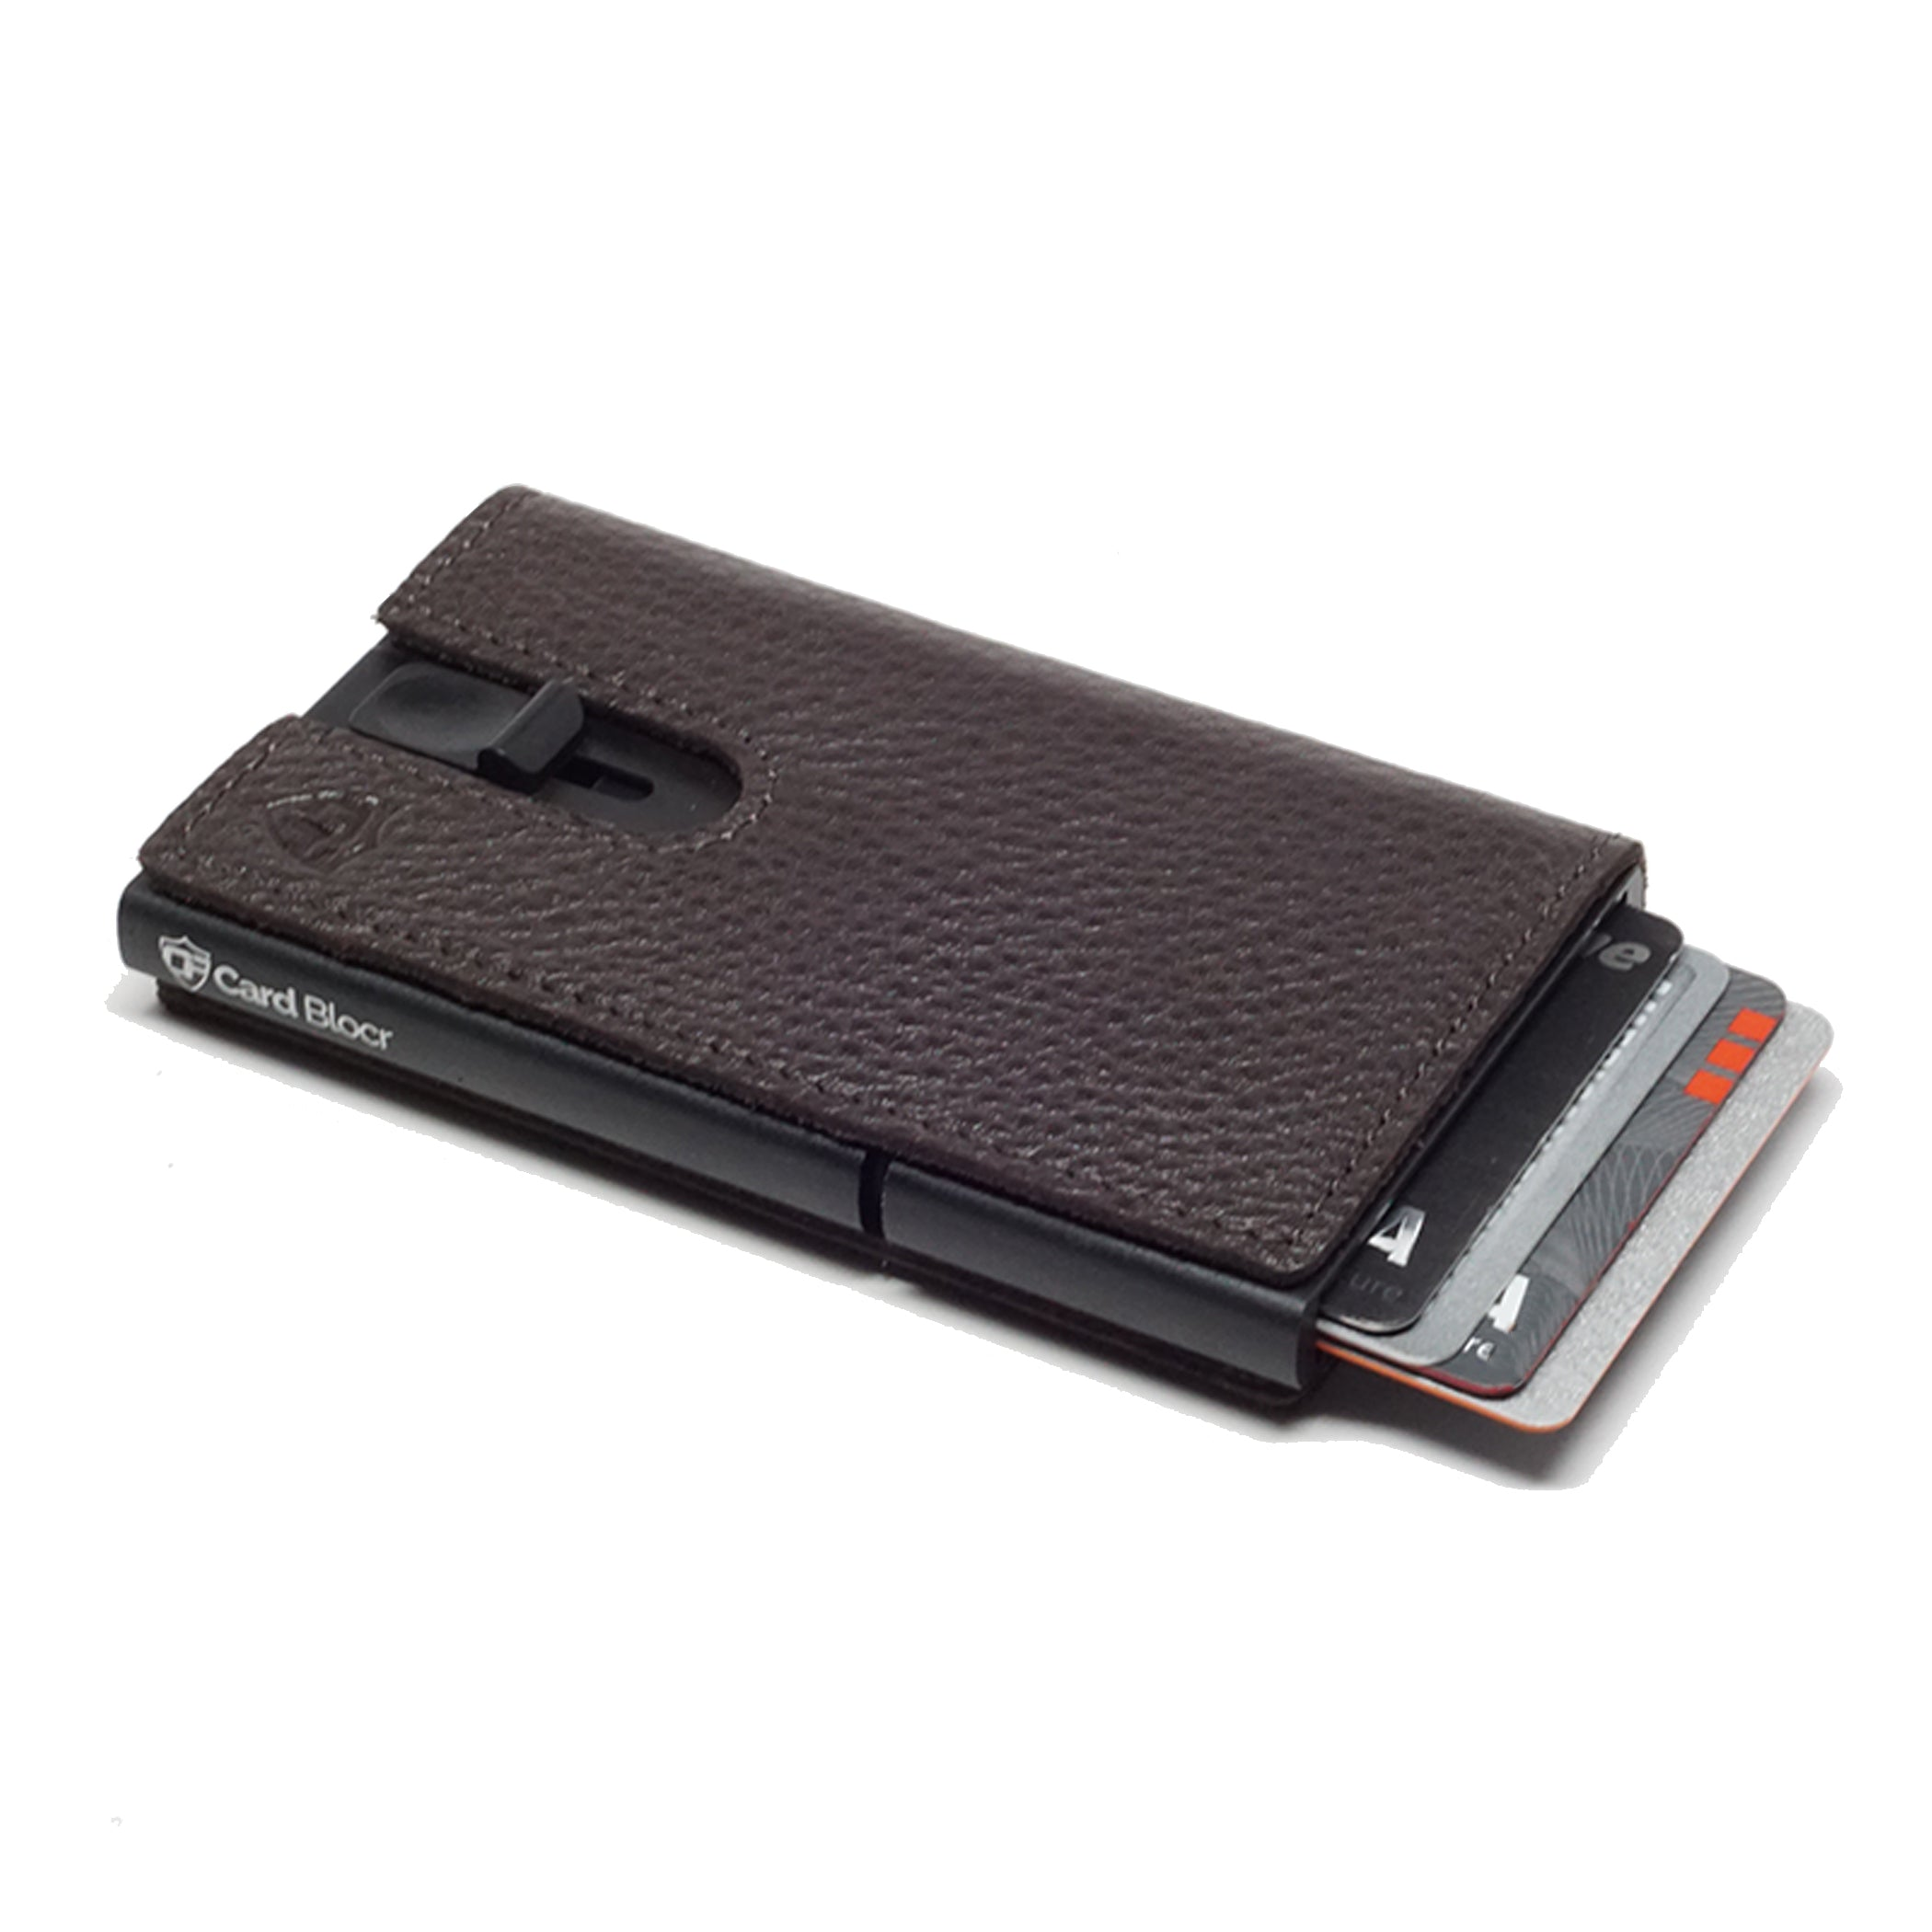 Card Blocr Credit Card Holder in Black Wrapped in Dark Chocolate Brown Leather | RFID Wallet 45